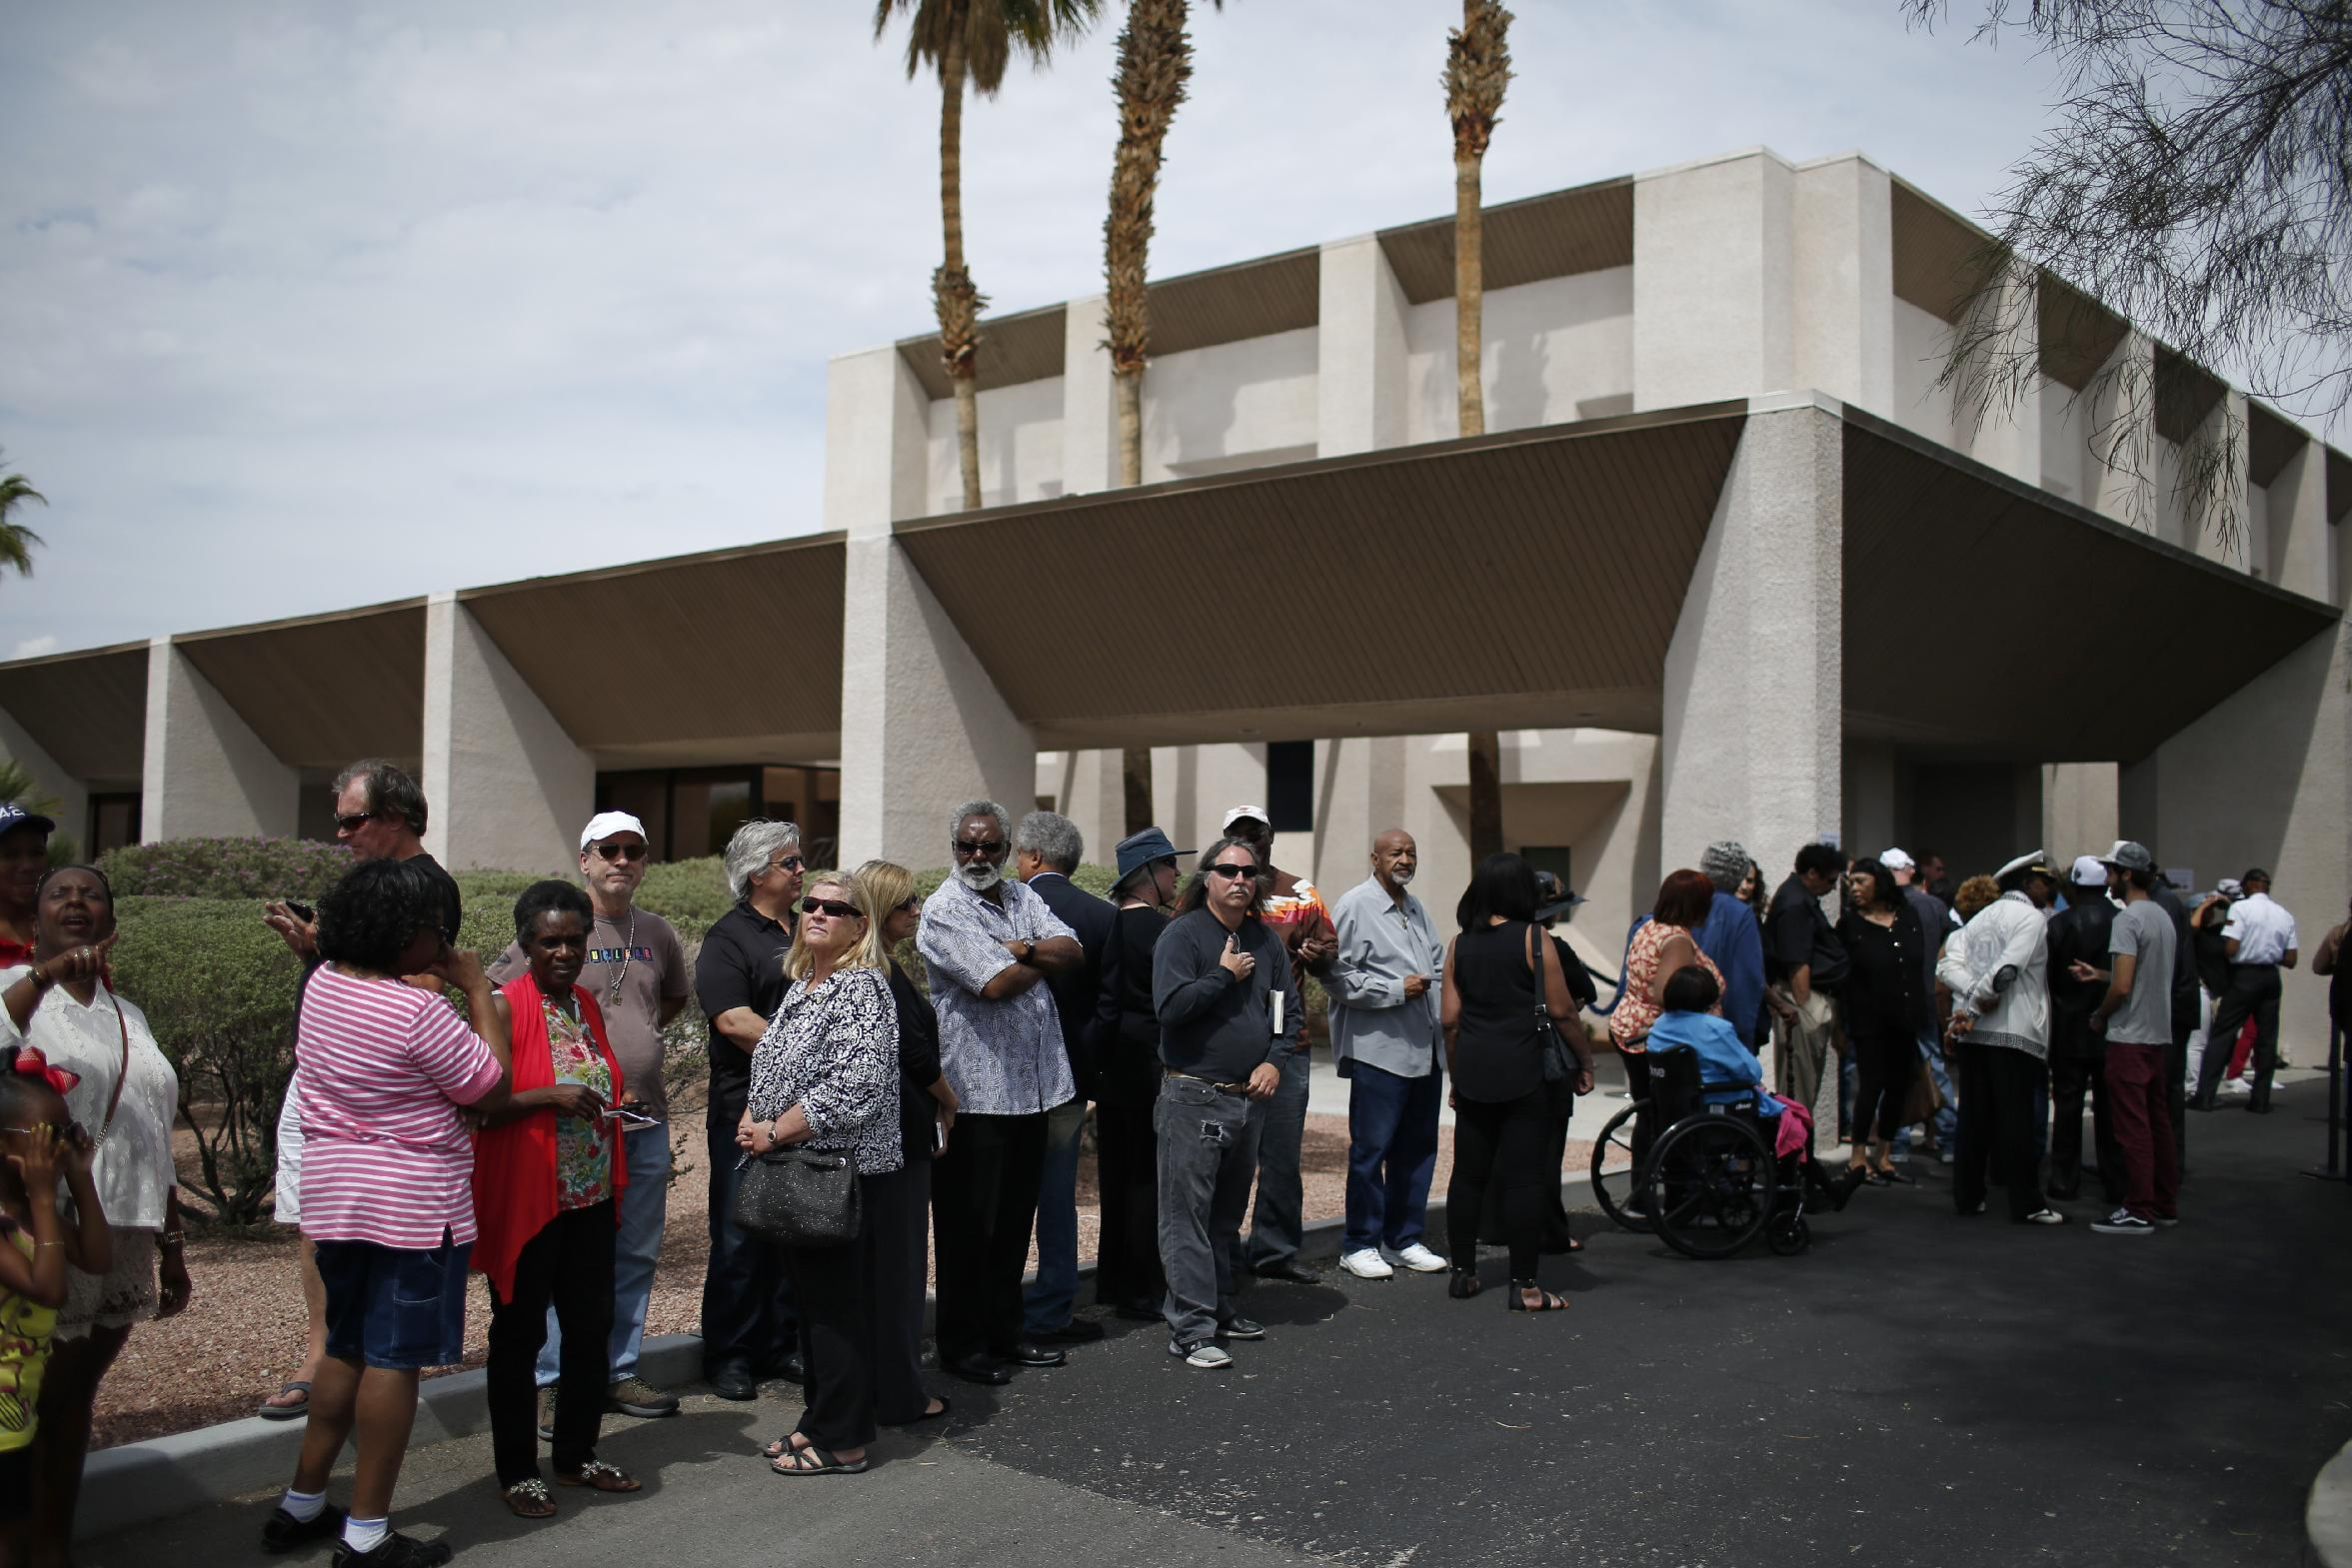 Hundreds line up for Las Vegas public viewing of B.B. King